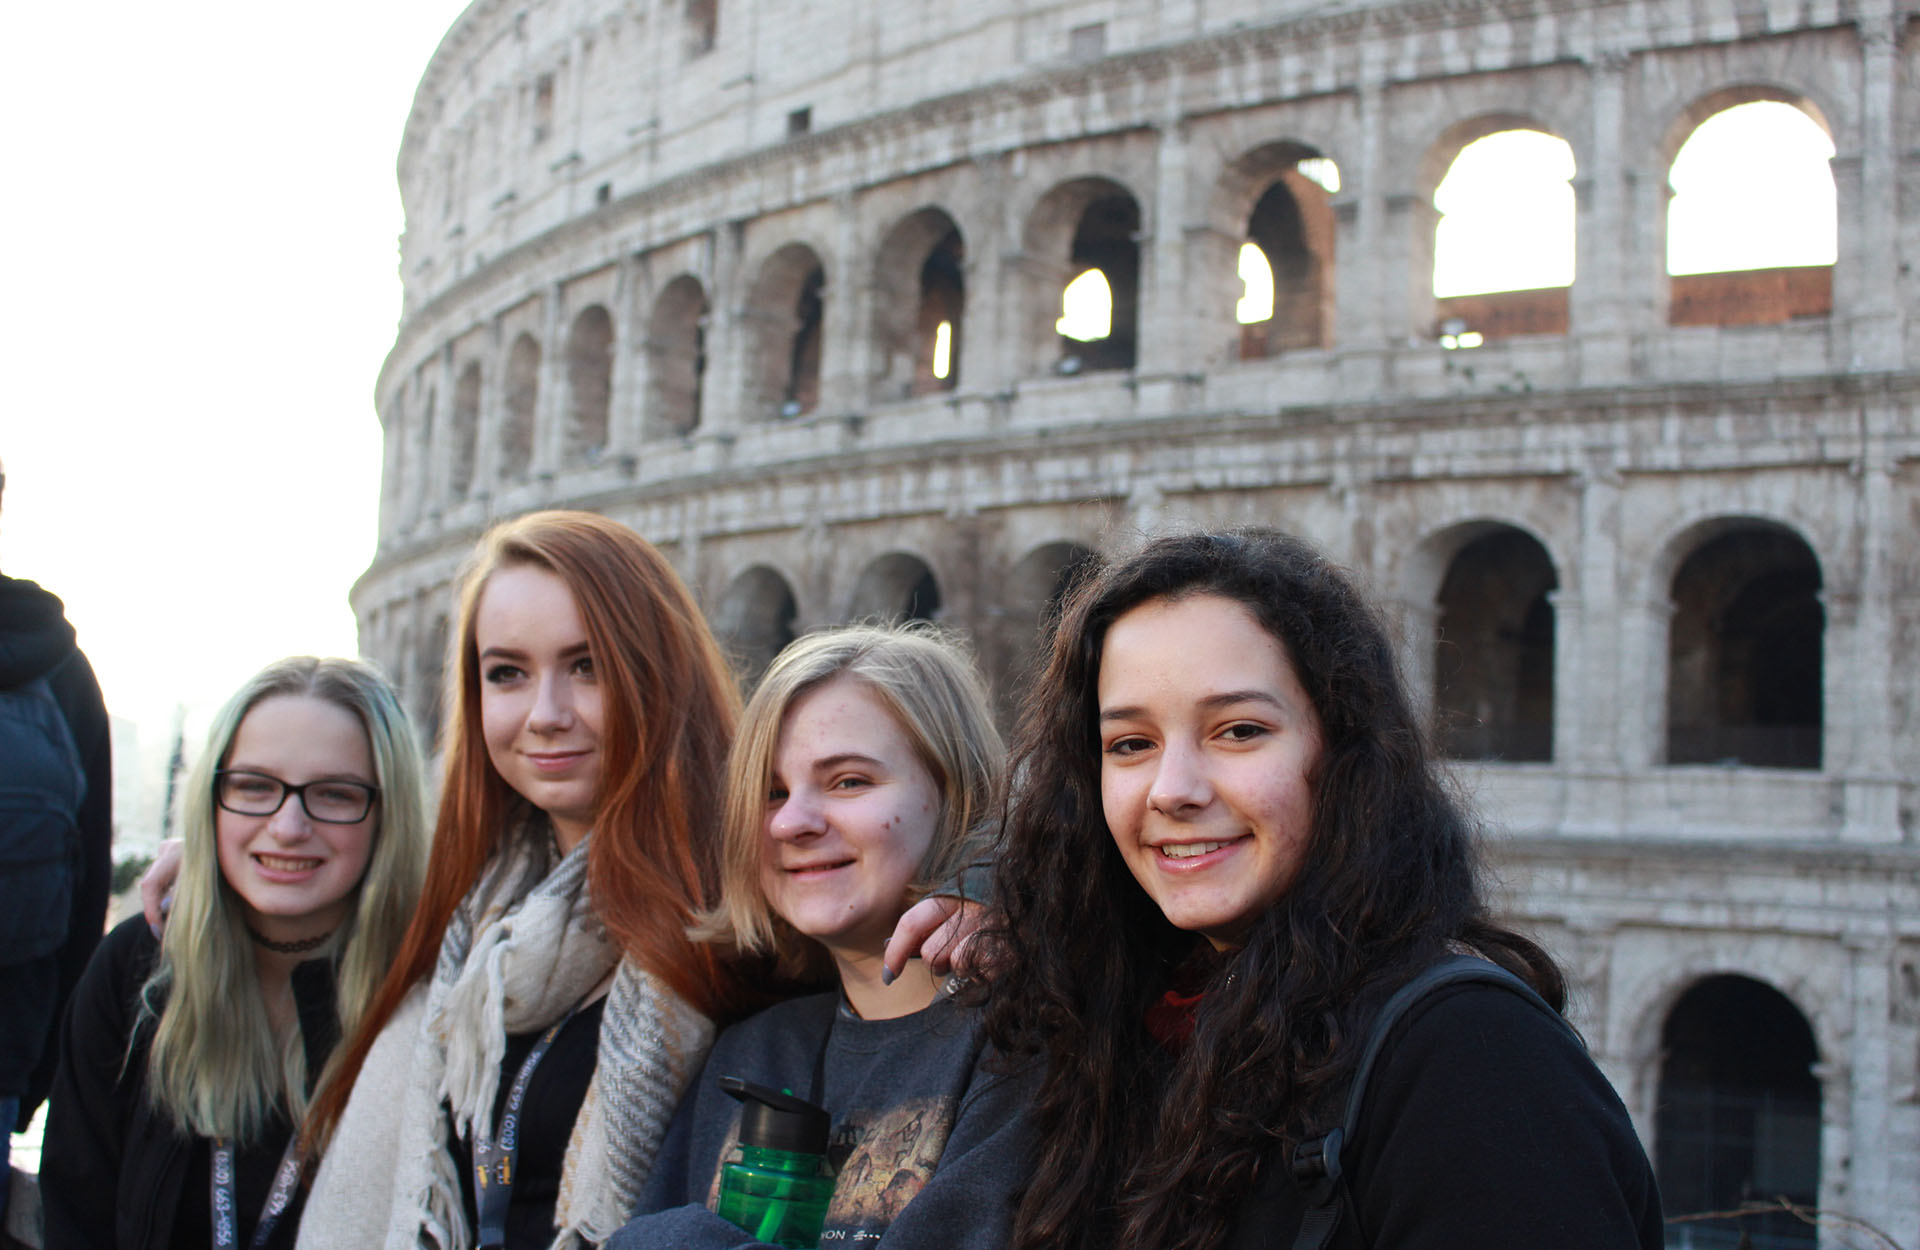 Students in front of the Colosseum